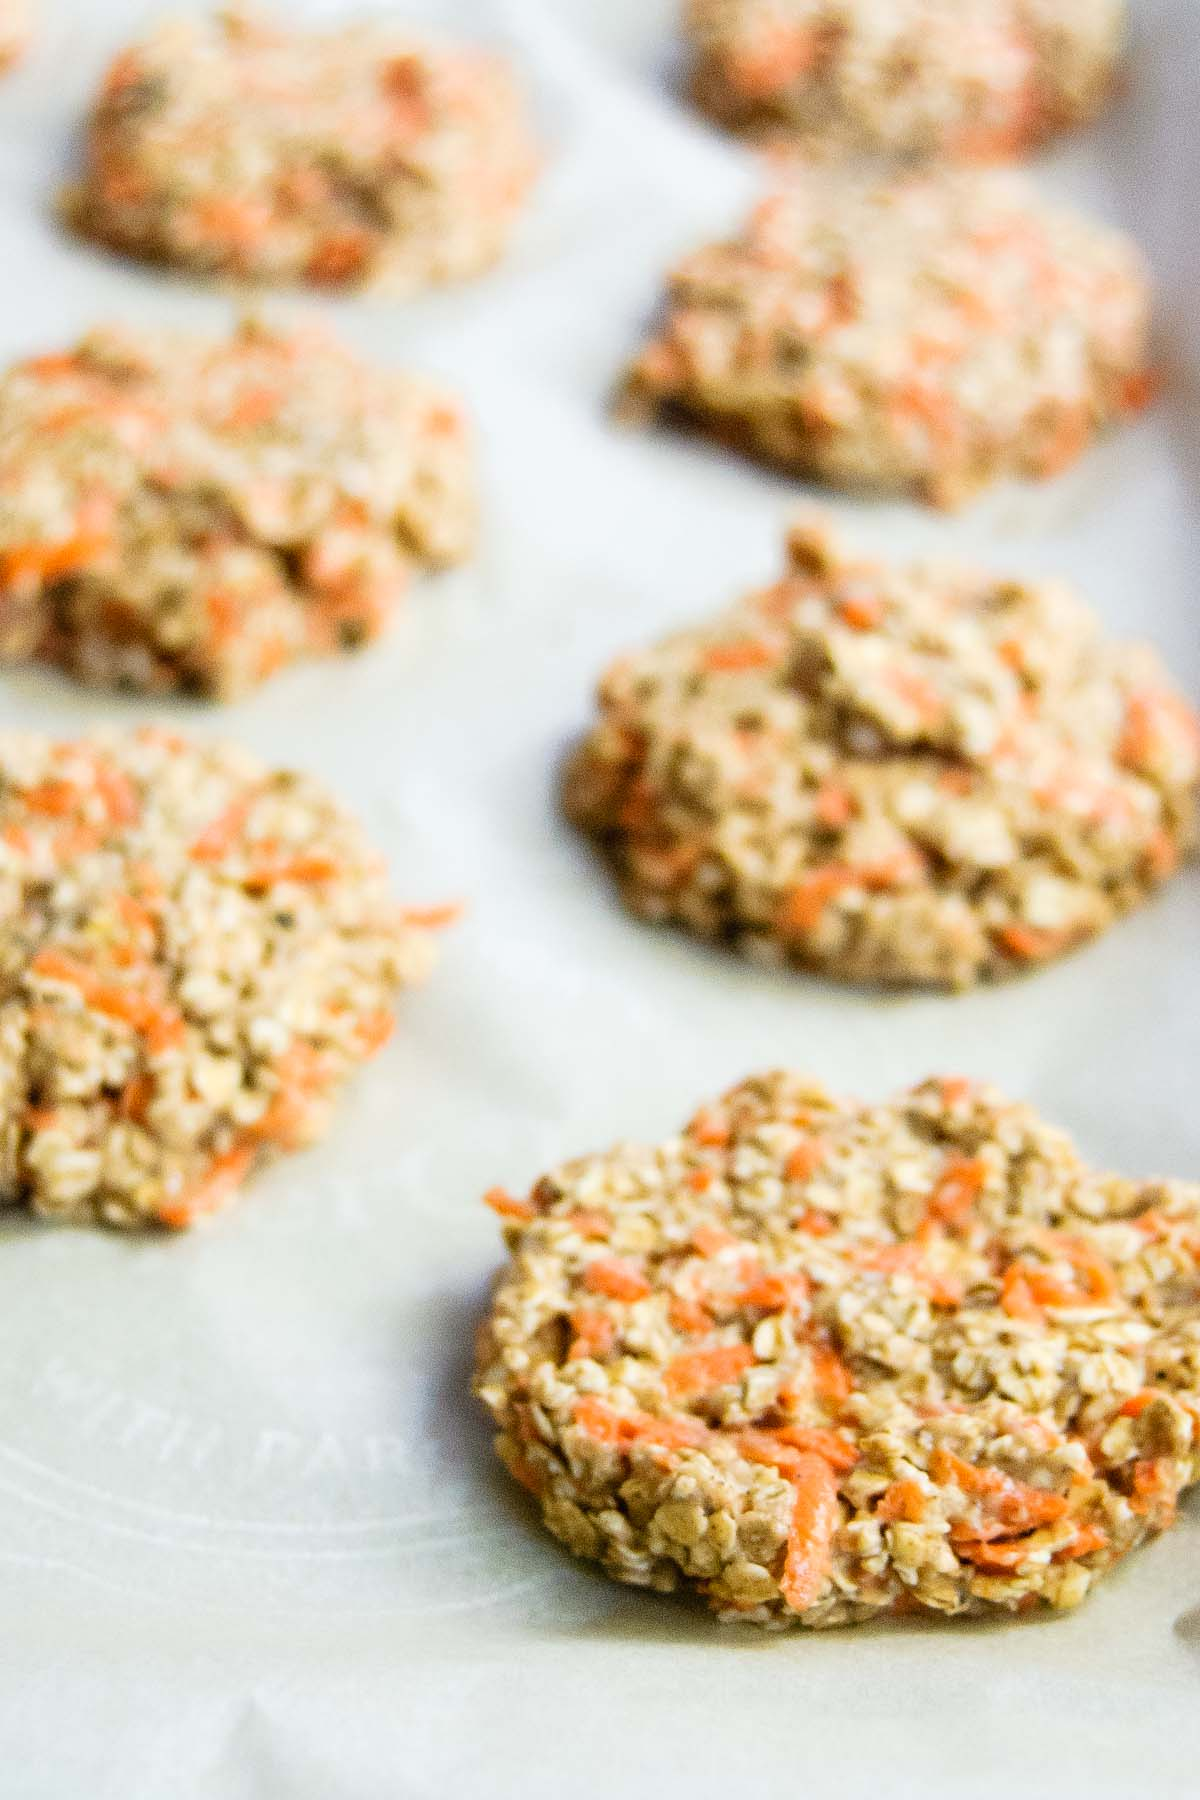 No more excuses, eating breakfast is uber important! Make these Healthy Oatmeal Carrot Breakfast Cookies and you'll have breakfast ready and a good morning energy boost every day of the week!